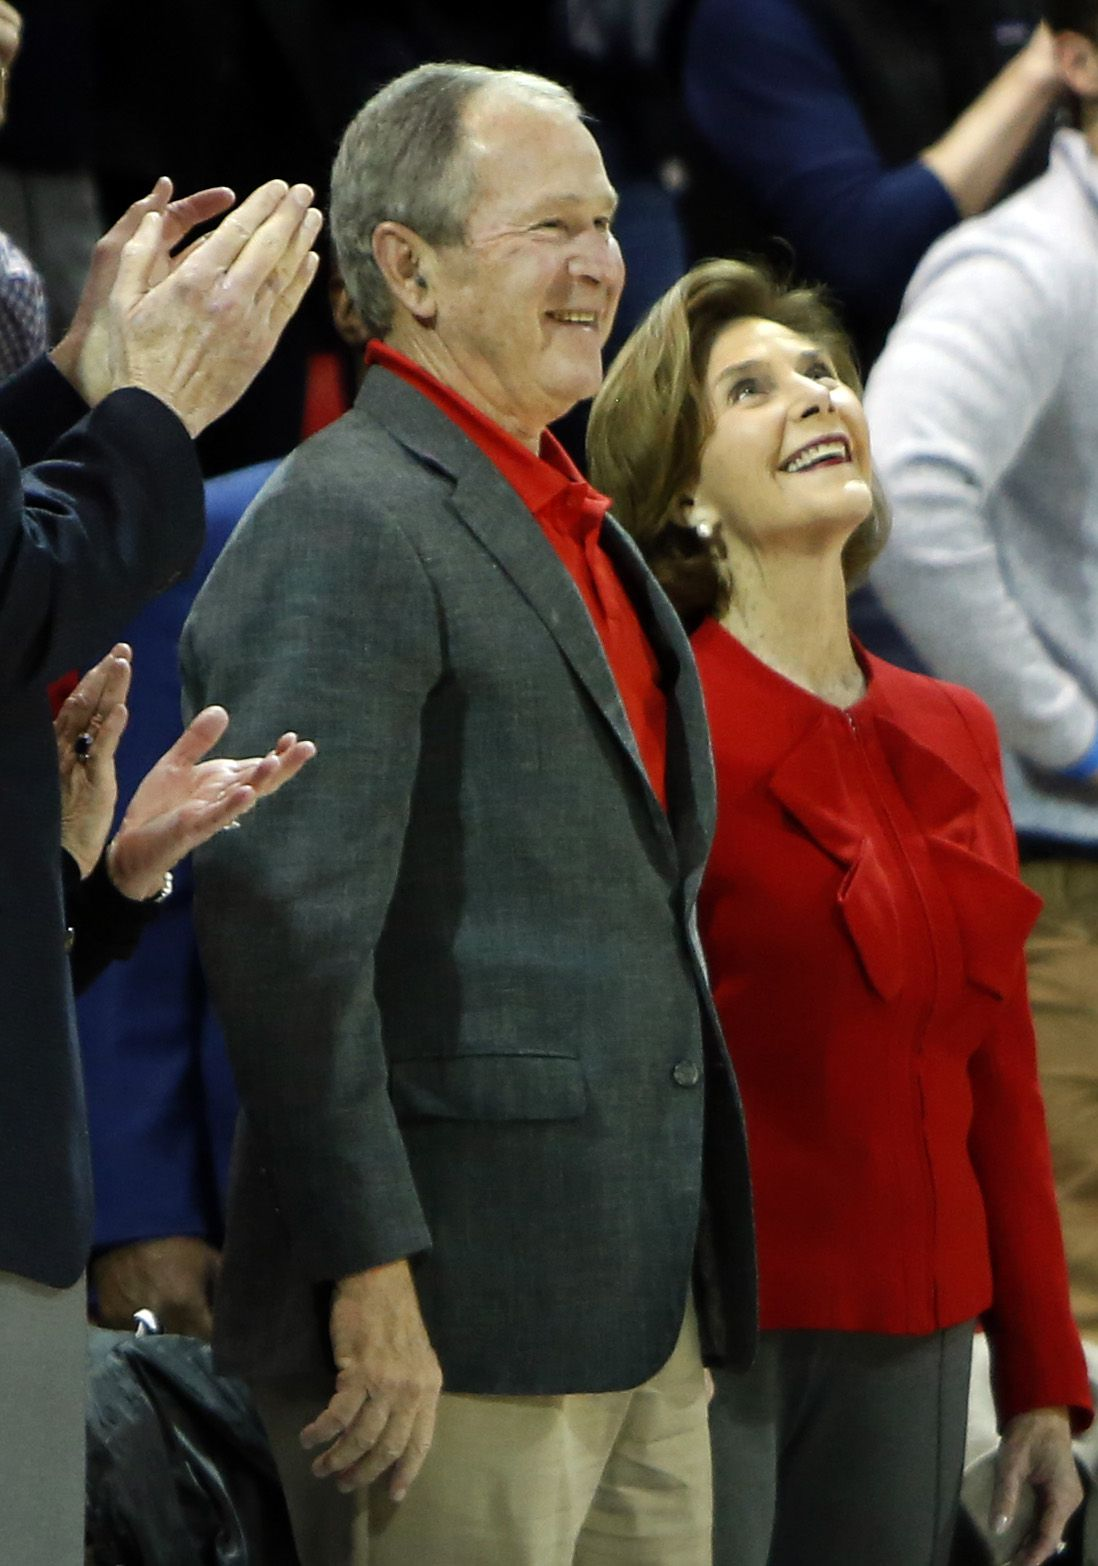 Former president George Bush and his wife Laura beam as they are announced to a welcoming crowd during the first half of the SMU versus Memphis game. SMU defeated memphis 58-53. The two teams from the NCAA's American Athletic Conference played their men's basketball game at SMU's Moody Coliseum in Dallas on February 25, 2020.